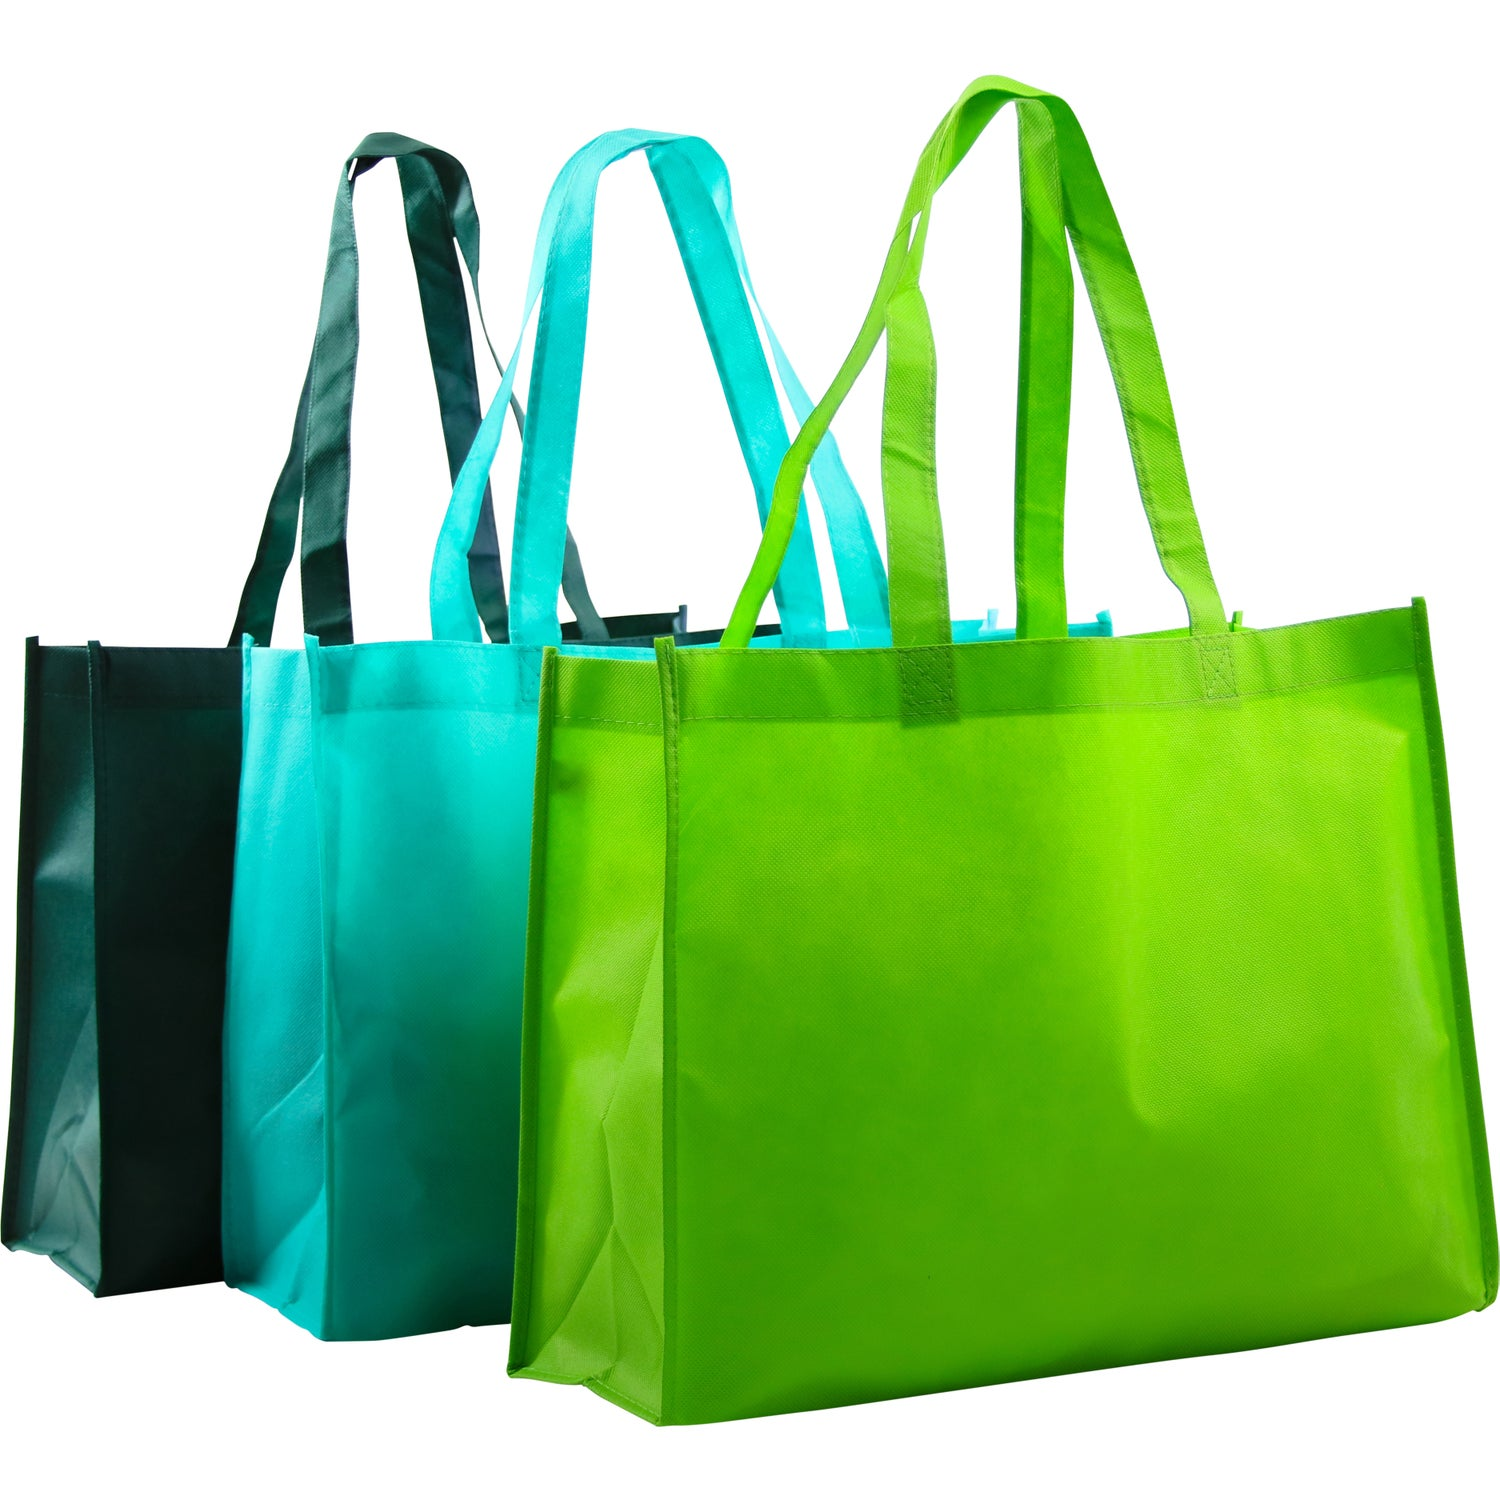 0351427aa79 CLICK HERE to Order Medium Eco-Friendly Non Woven Tote Bags Printed with  Your Logo for $1.012 Ea.